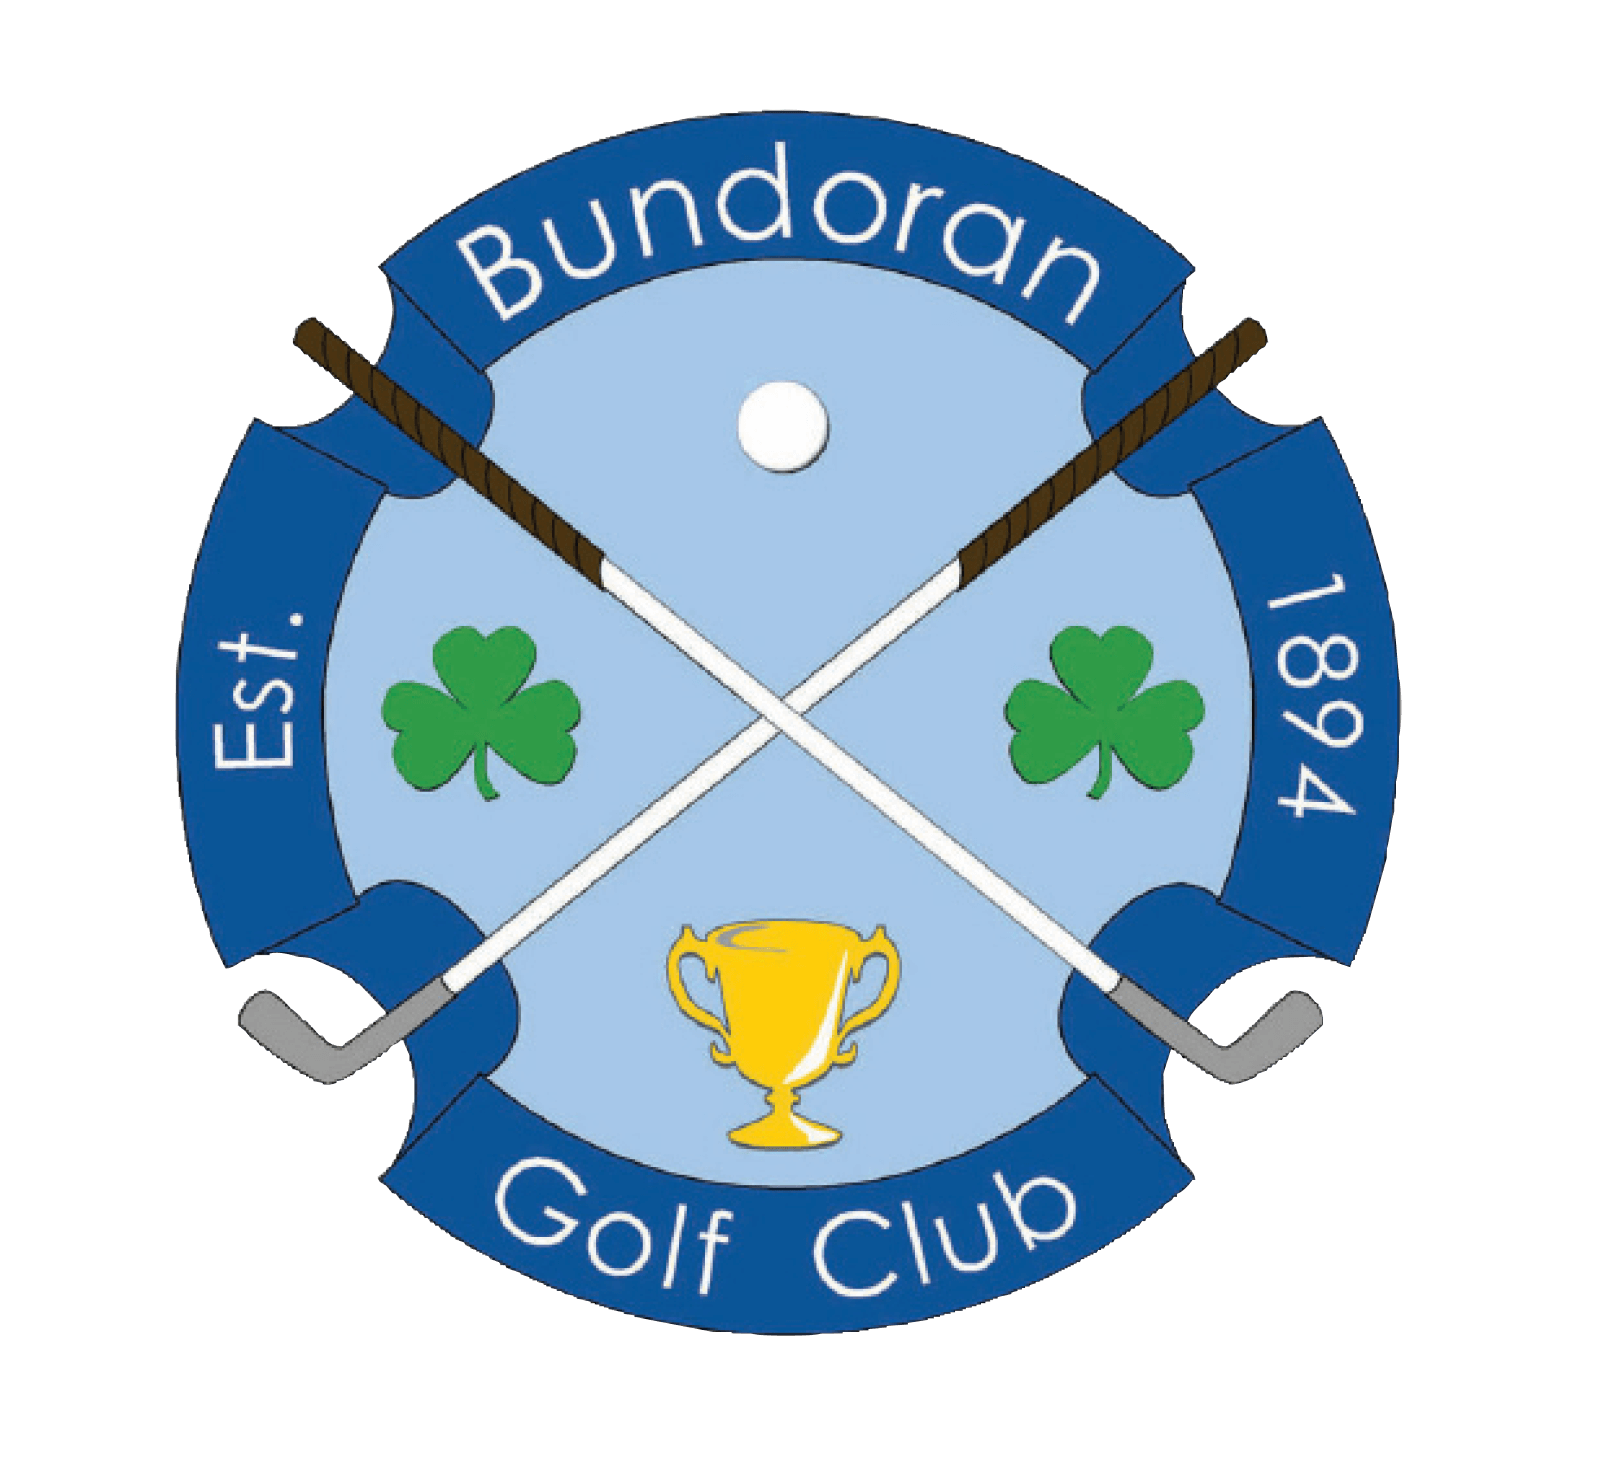 Golfer clipart golf green. Bundoran club